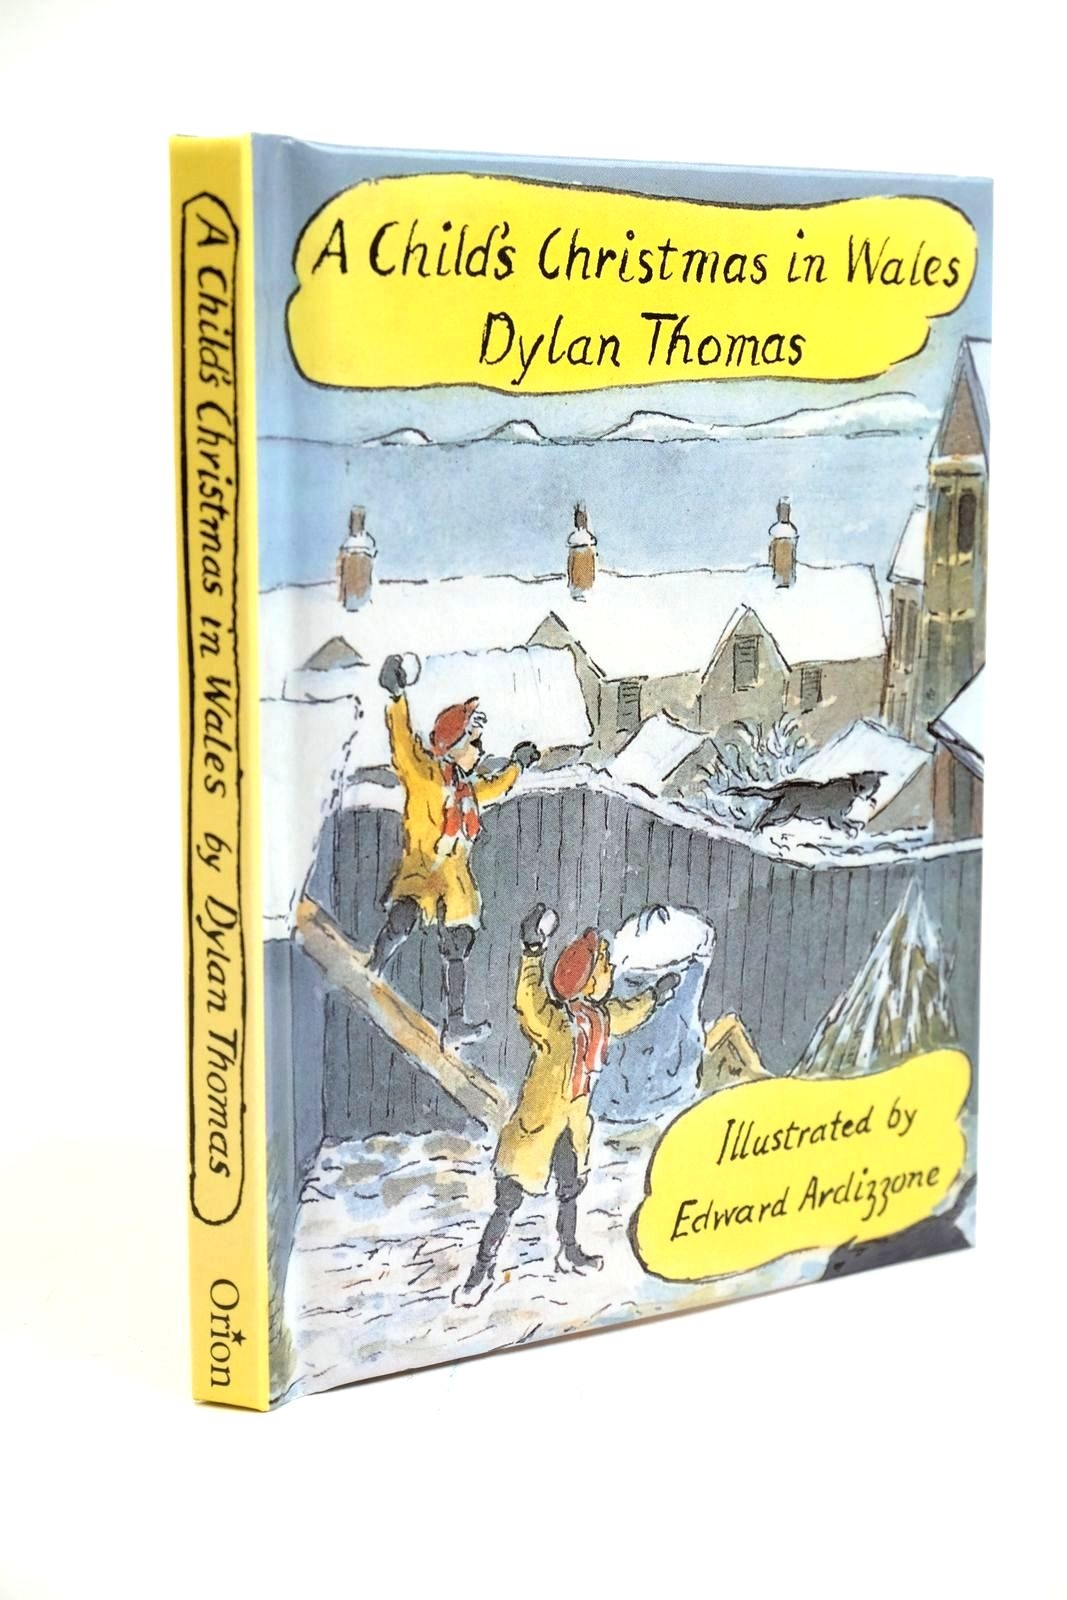 Photo of A CHILD'S CHRISTMAS IN WALES written by Thomas, Dylan illustrated by Ardizzone, Edward published by Orion Children's Books (STOCK CODE: 1321427)  for sale by Stella & Rose's Books